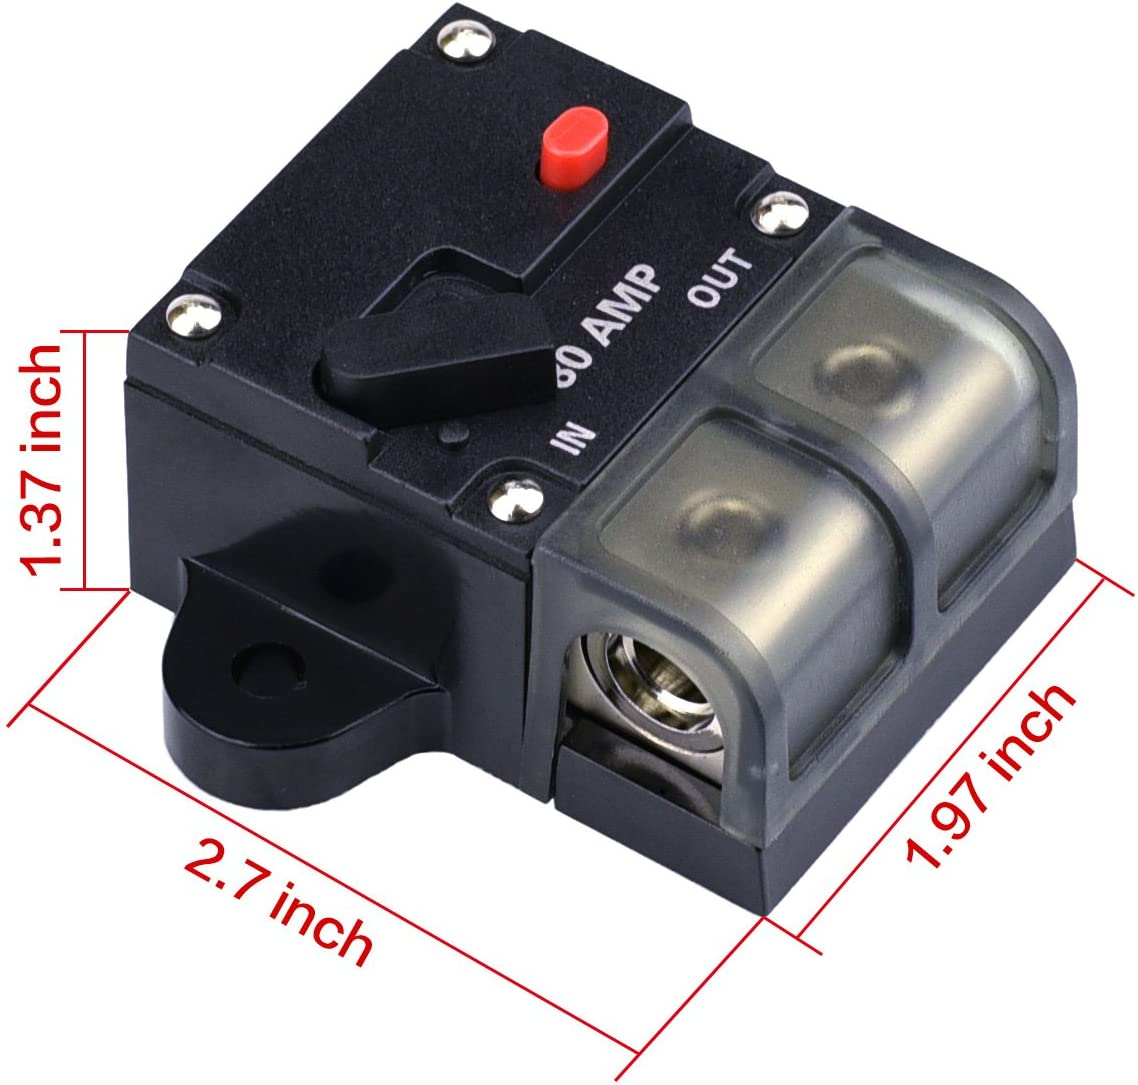 4 AWG to 3//8 AWG 50AMP 50A DC 12V-24V Car Stereo Audio Circuit Breaker with Manual Reset Inline Fuse Holder and Battery Cable Ends Closed End Crimp Connectors /—